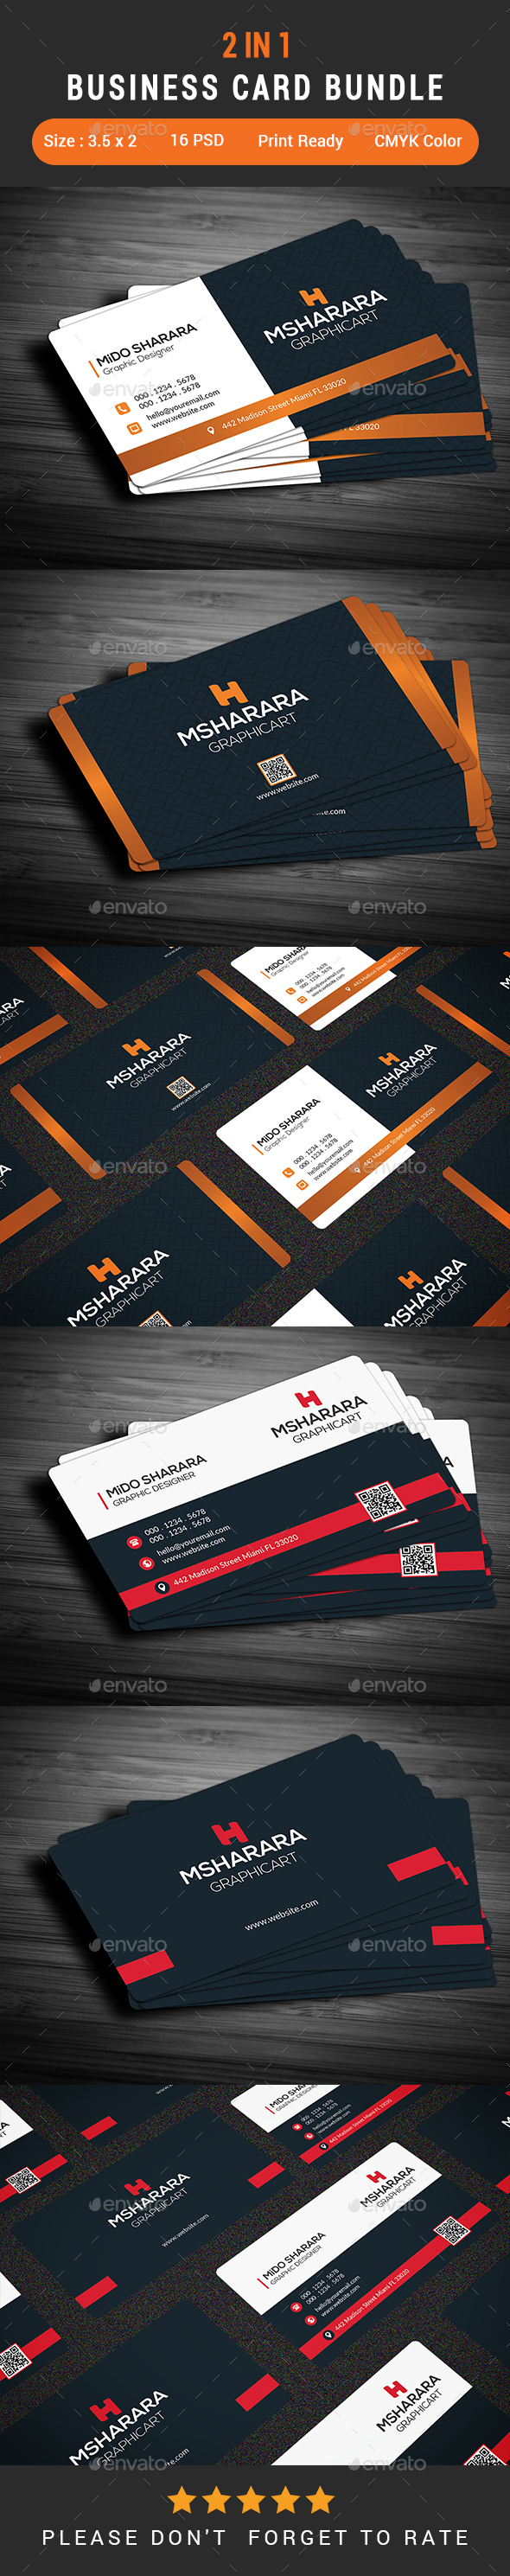 2 in 1 Business Card Bundle by Alpha-Designs | GraphicRiver